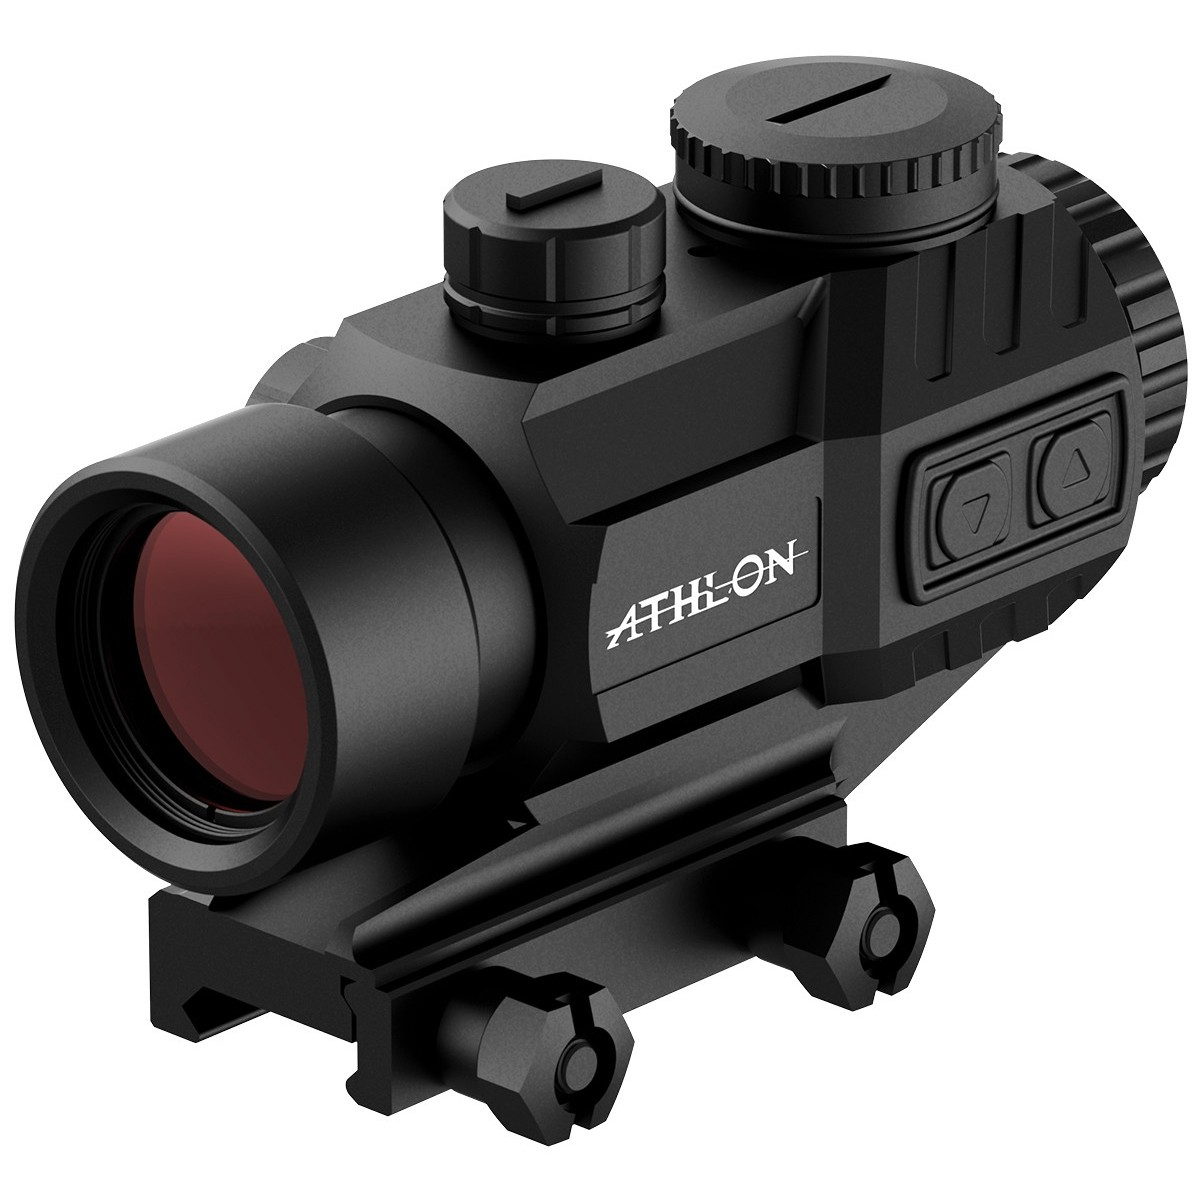 Athlon 3x28 Midas TSP3 Prism Scope